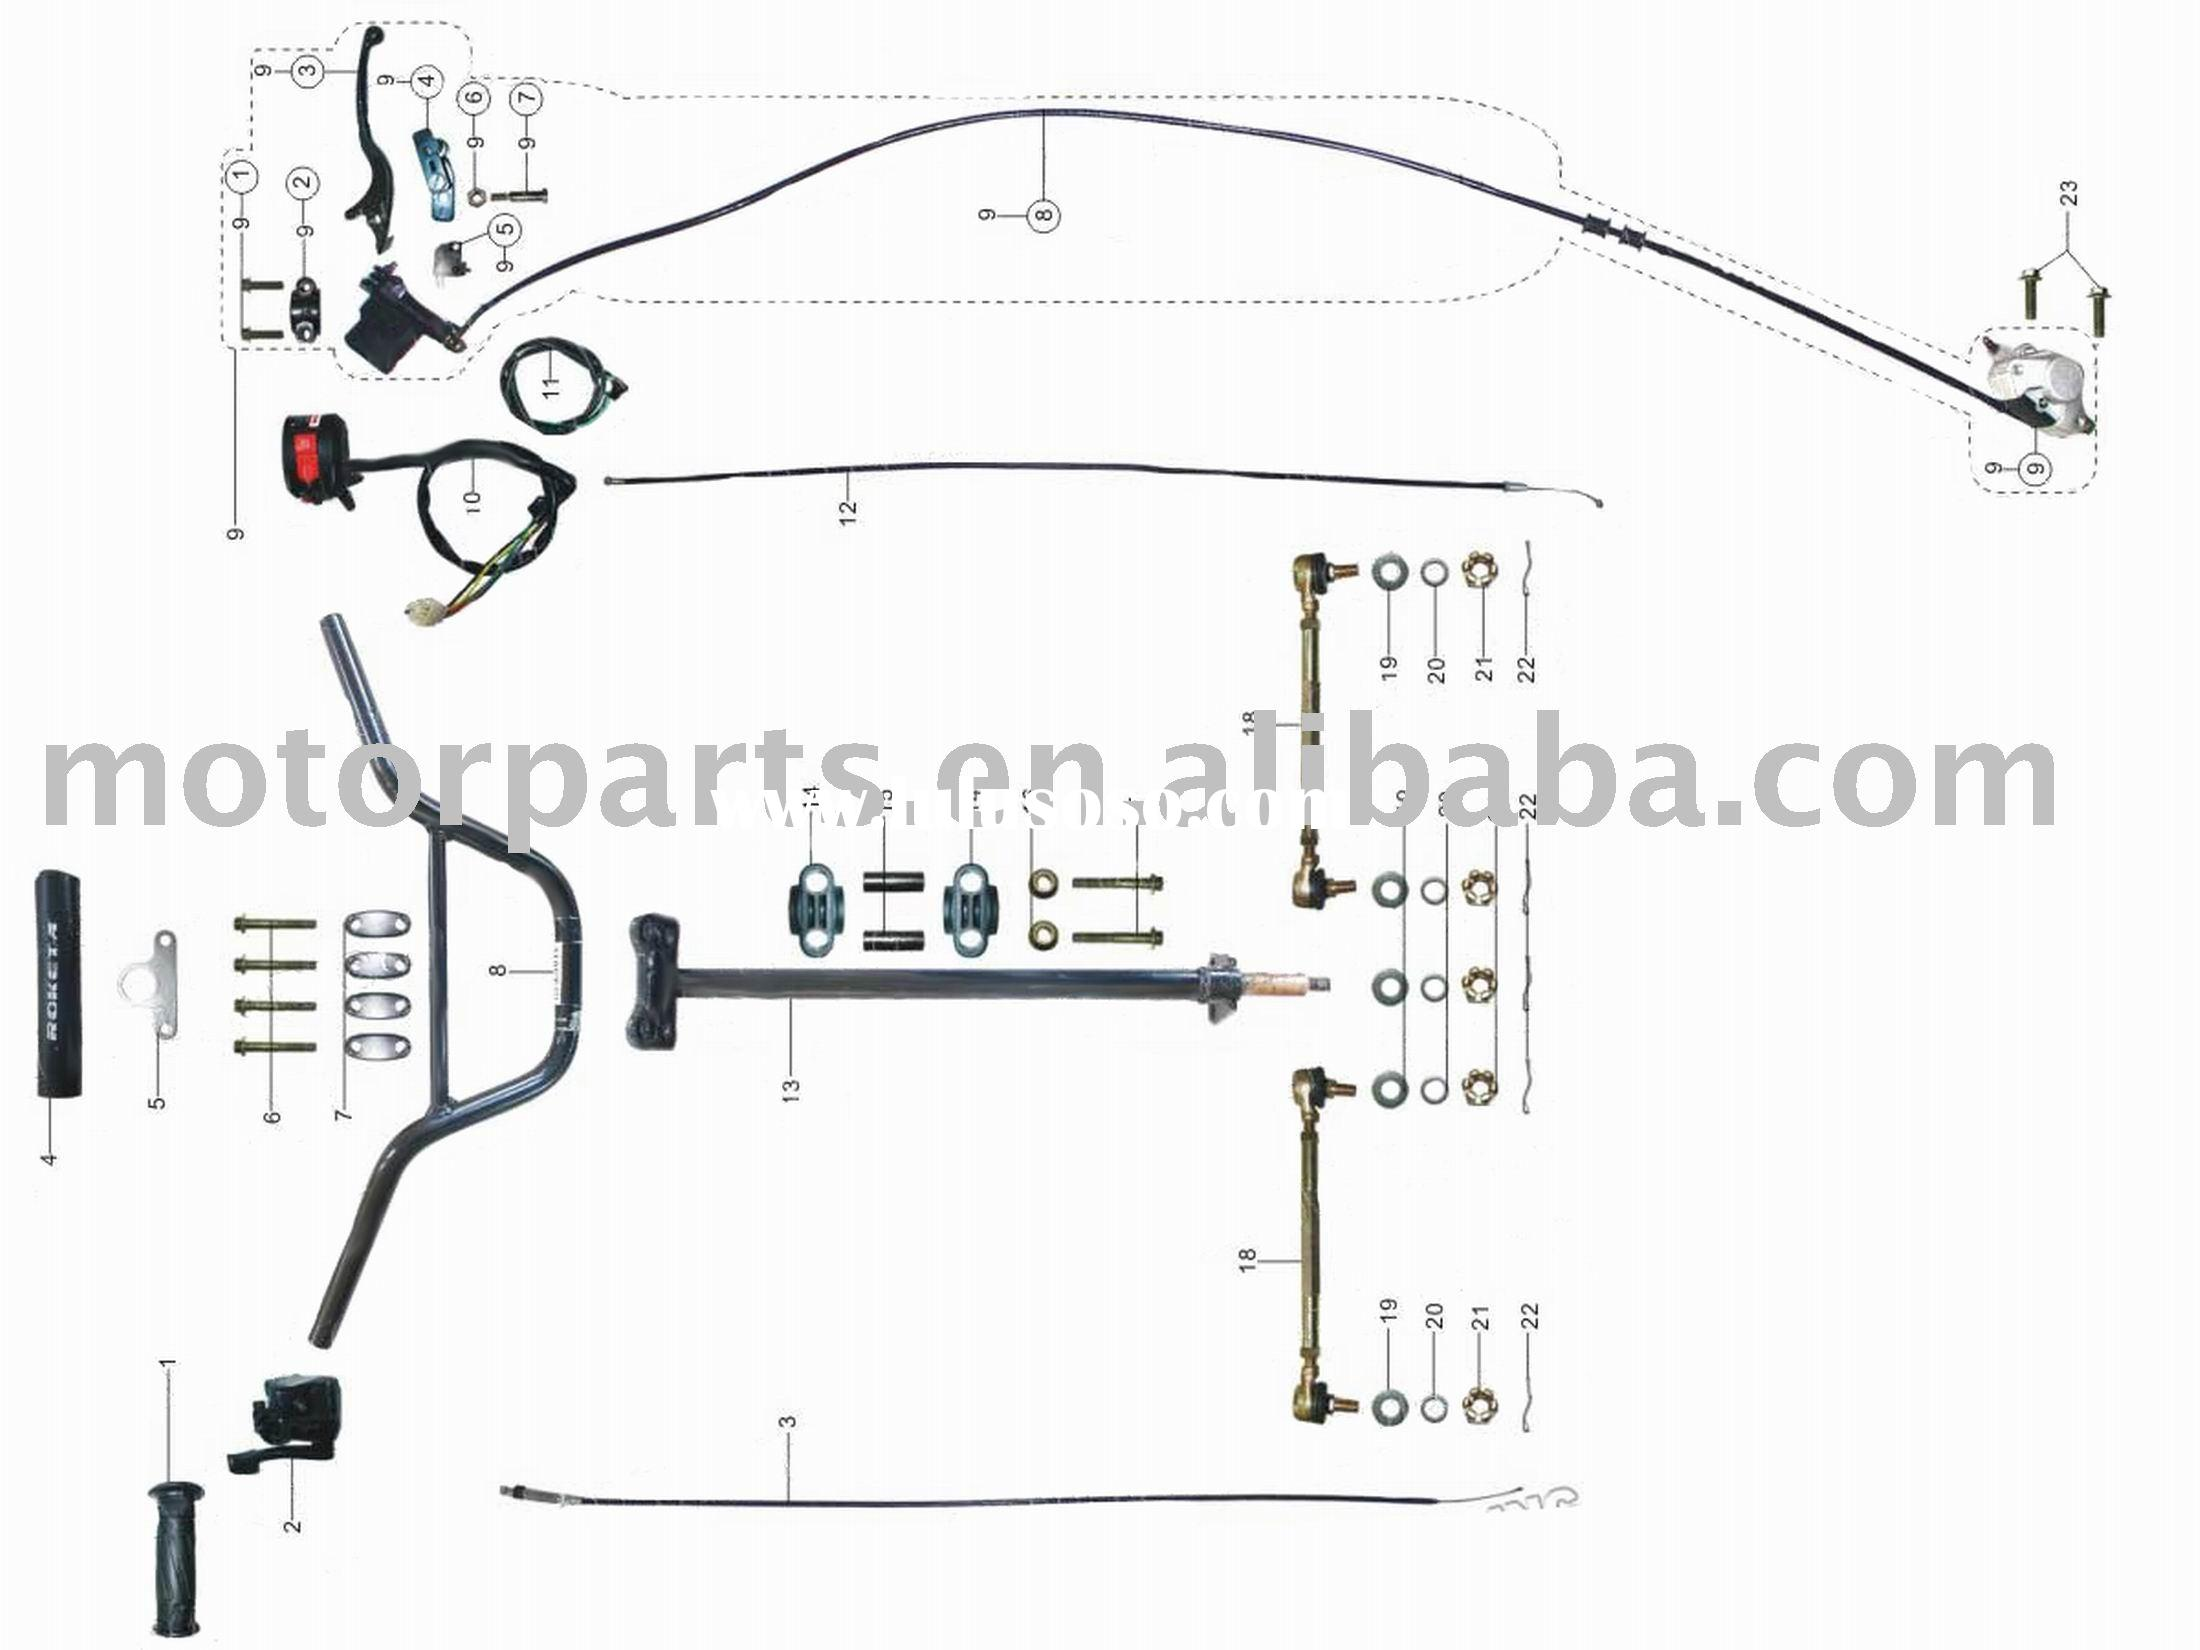 110 atv wiring diagram ar 15 lower piston assy for loncin 250cc parts sale price